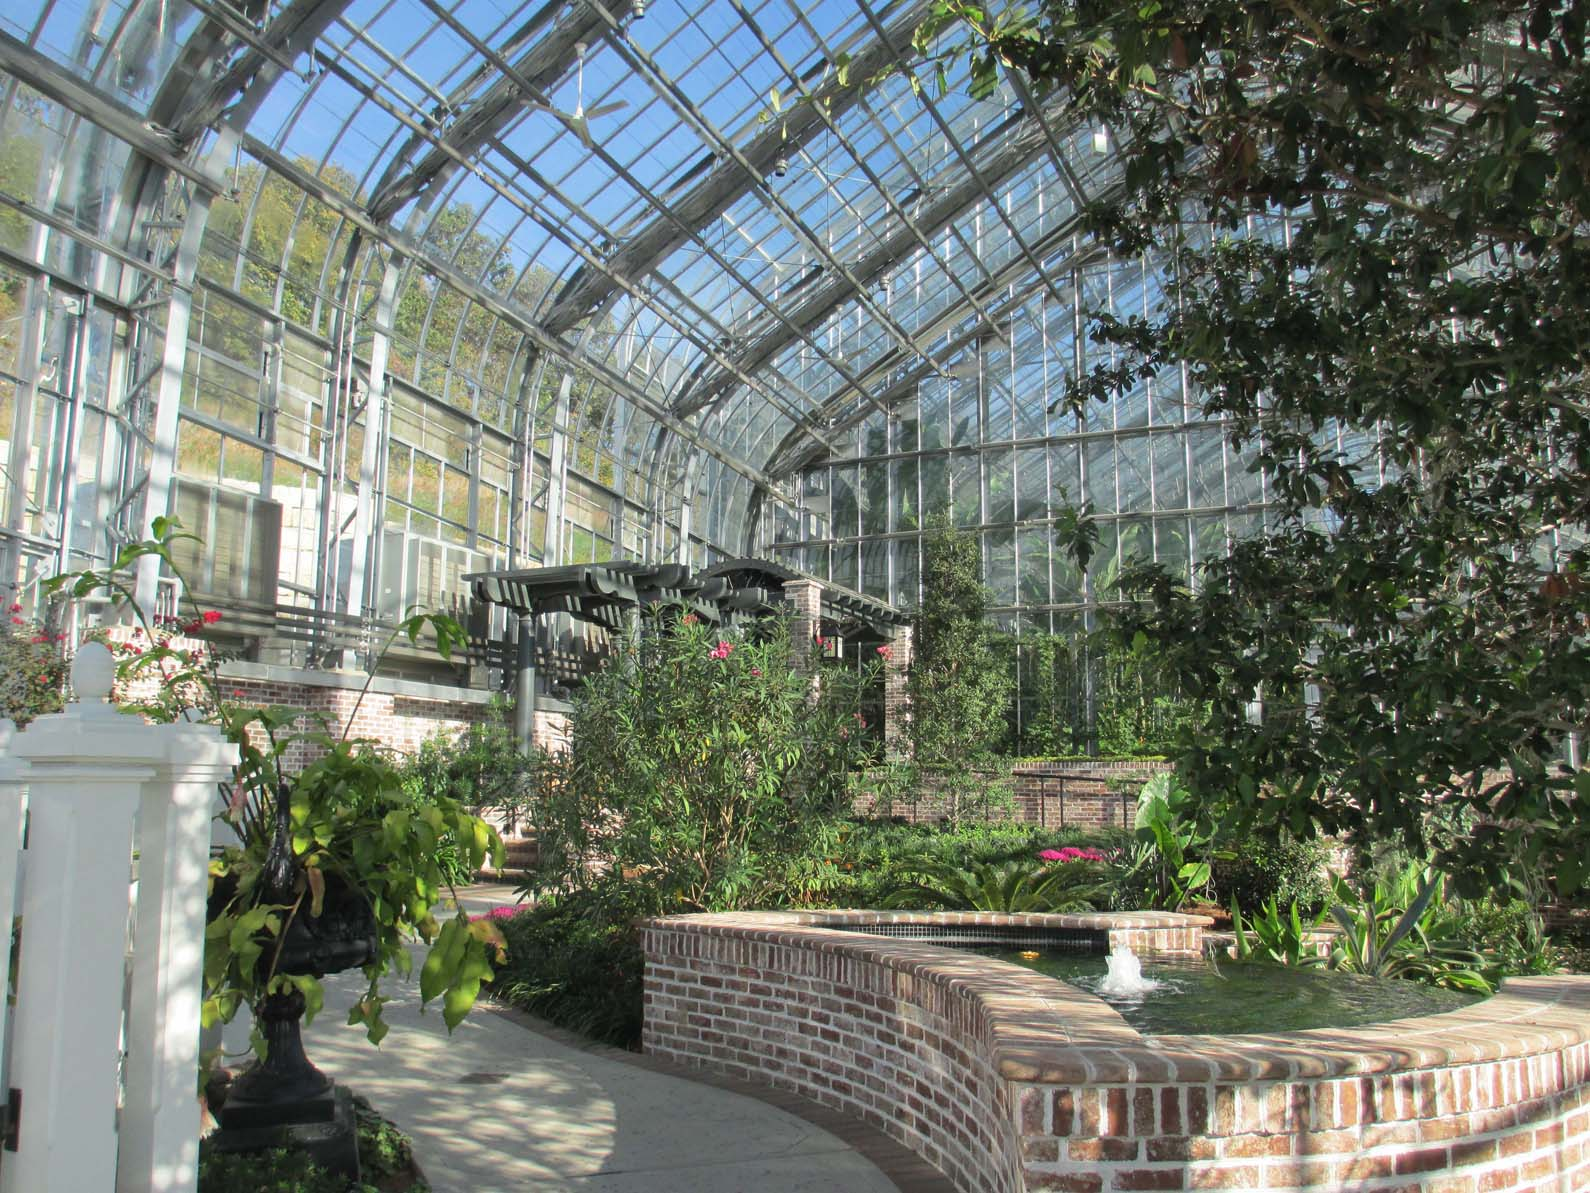 The Impressive 5,300 Square Foot Temperate House At The Marjorie K.  Daugherty Conservatory In Omaha, Filled With Plants That Are Not Quite  Hardy Enough To ...